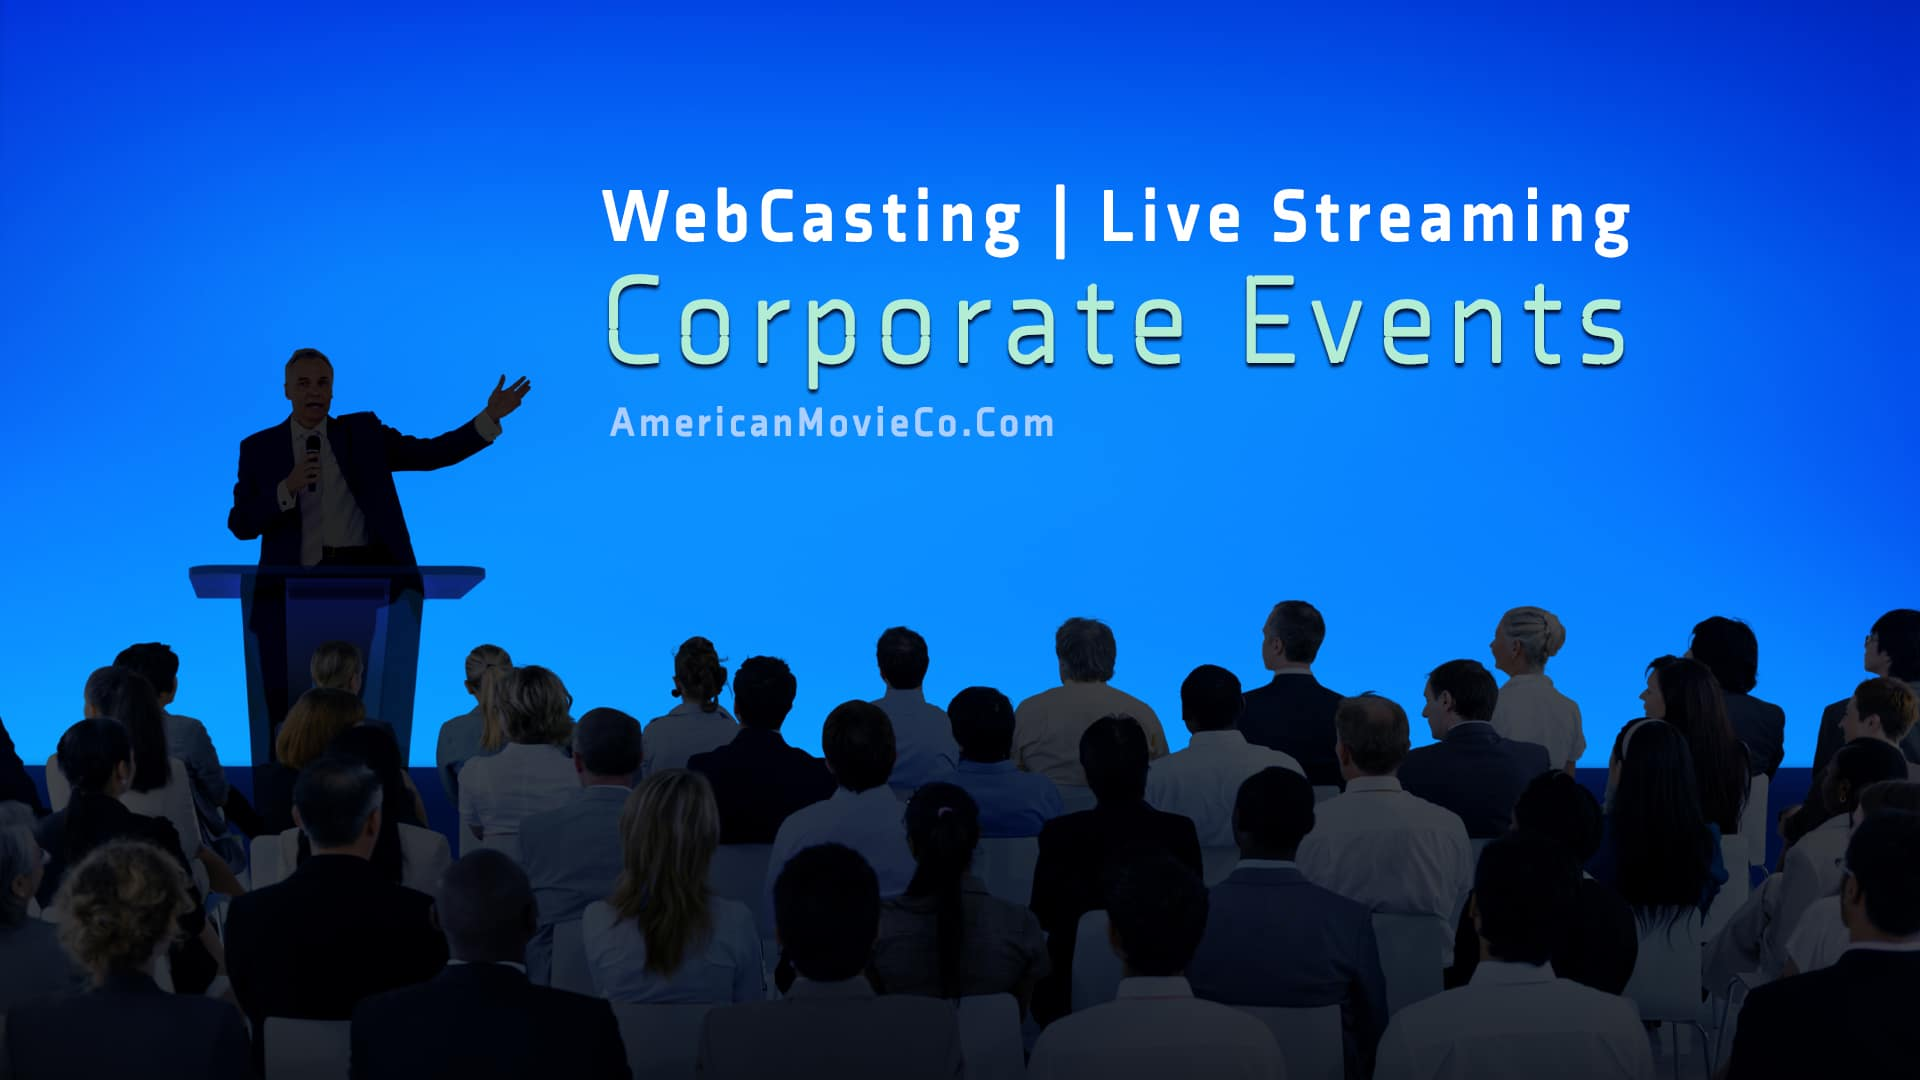 WebCasting Large group at Corporate Event  listen to man at podium - all in silhouette - blue background.